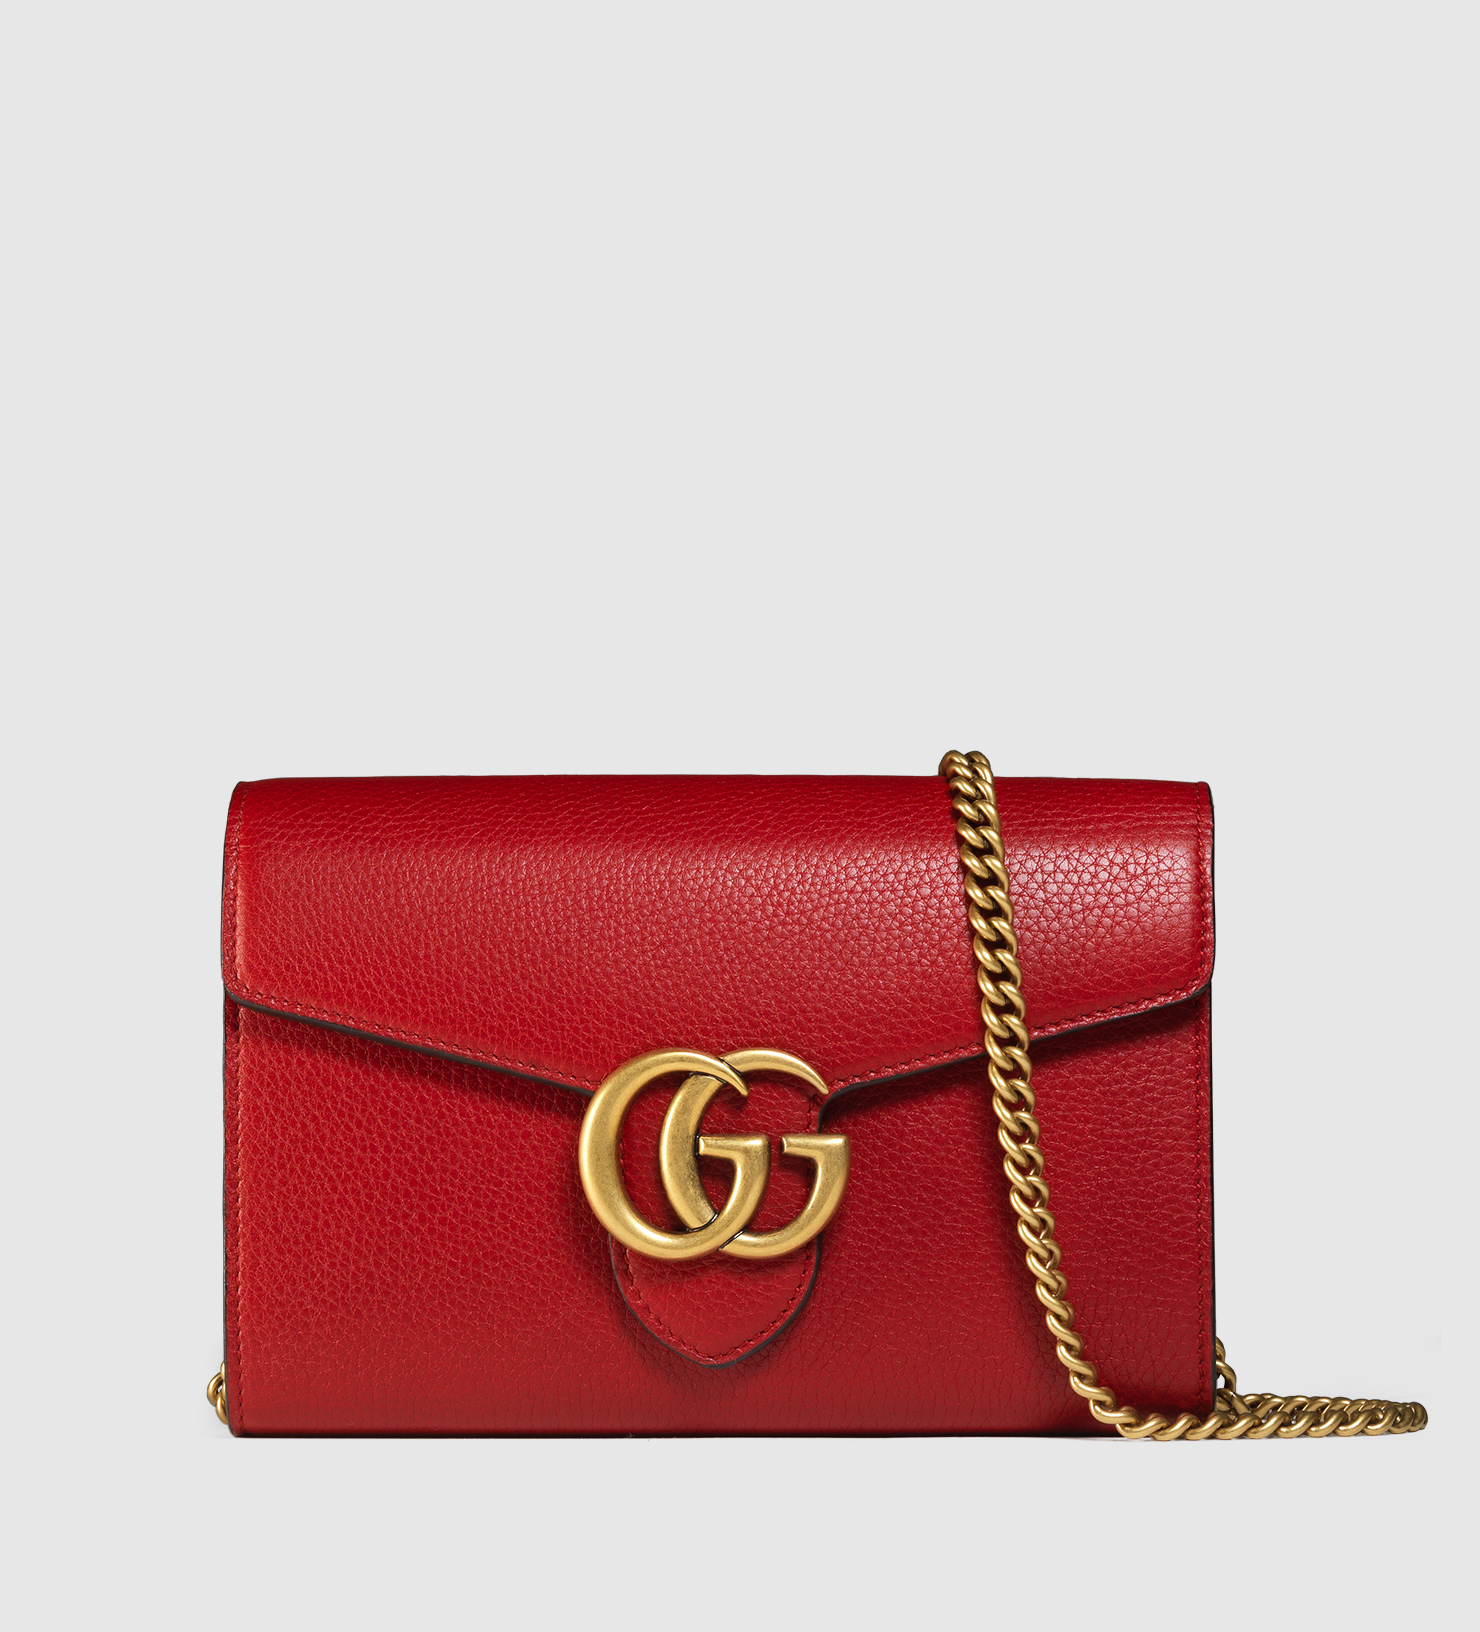 0cda081d613 Lyst - Gucci Gg Marmont Leather Chain Wallet in Red